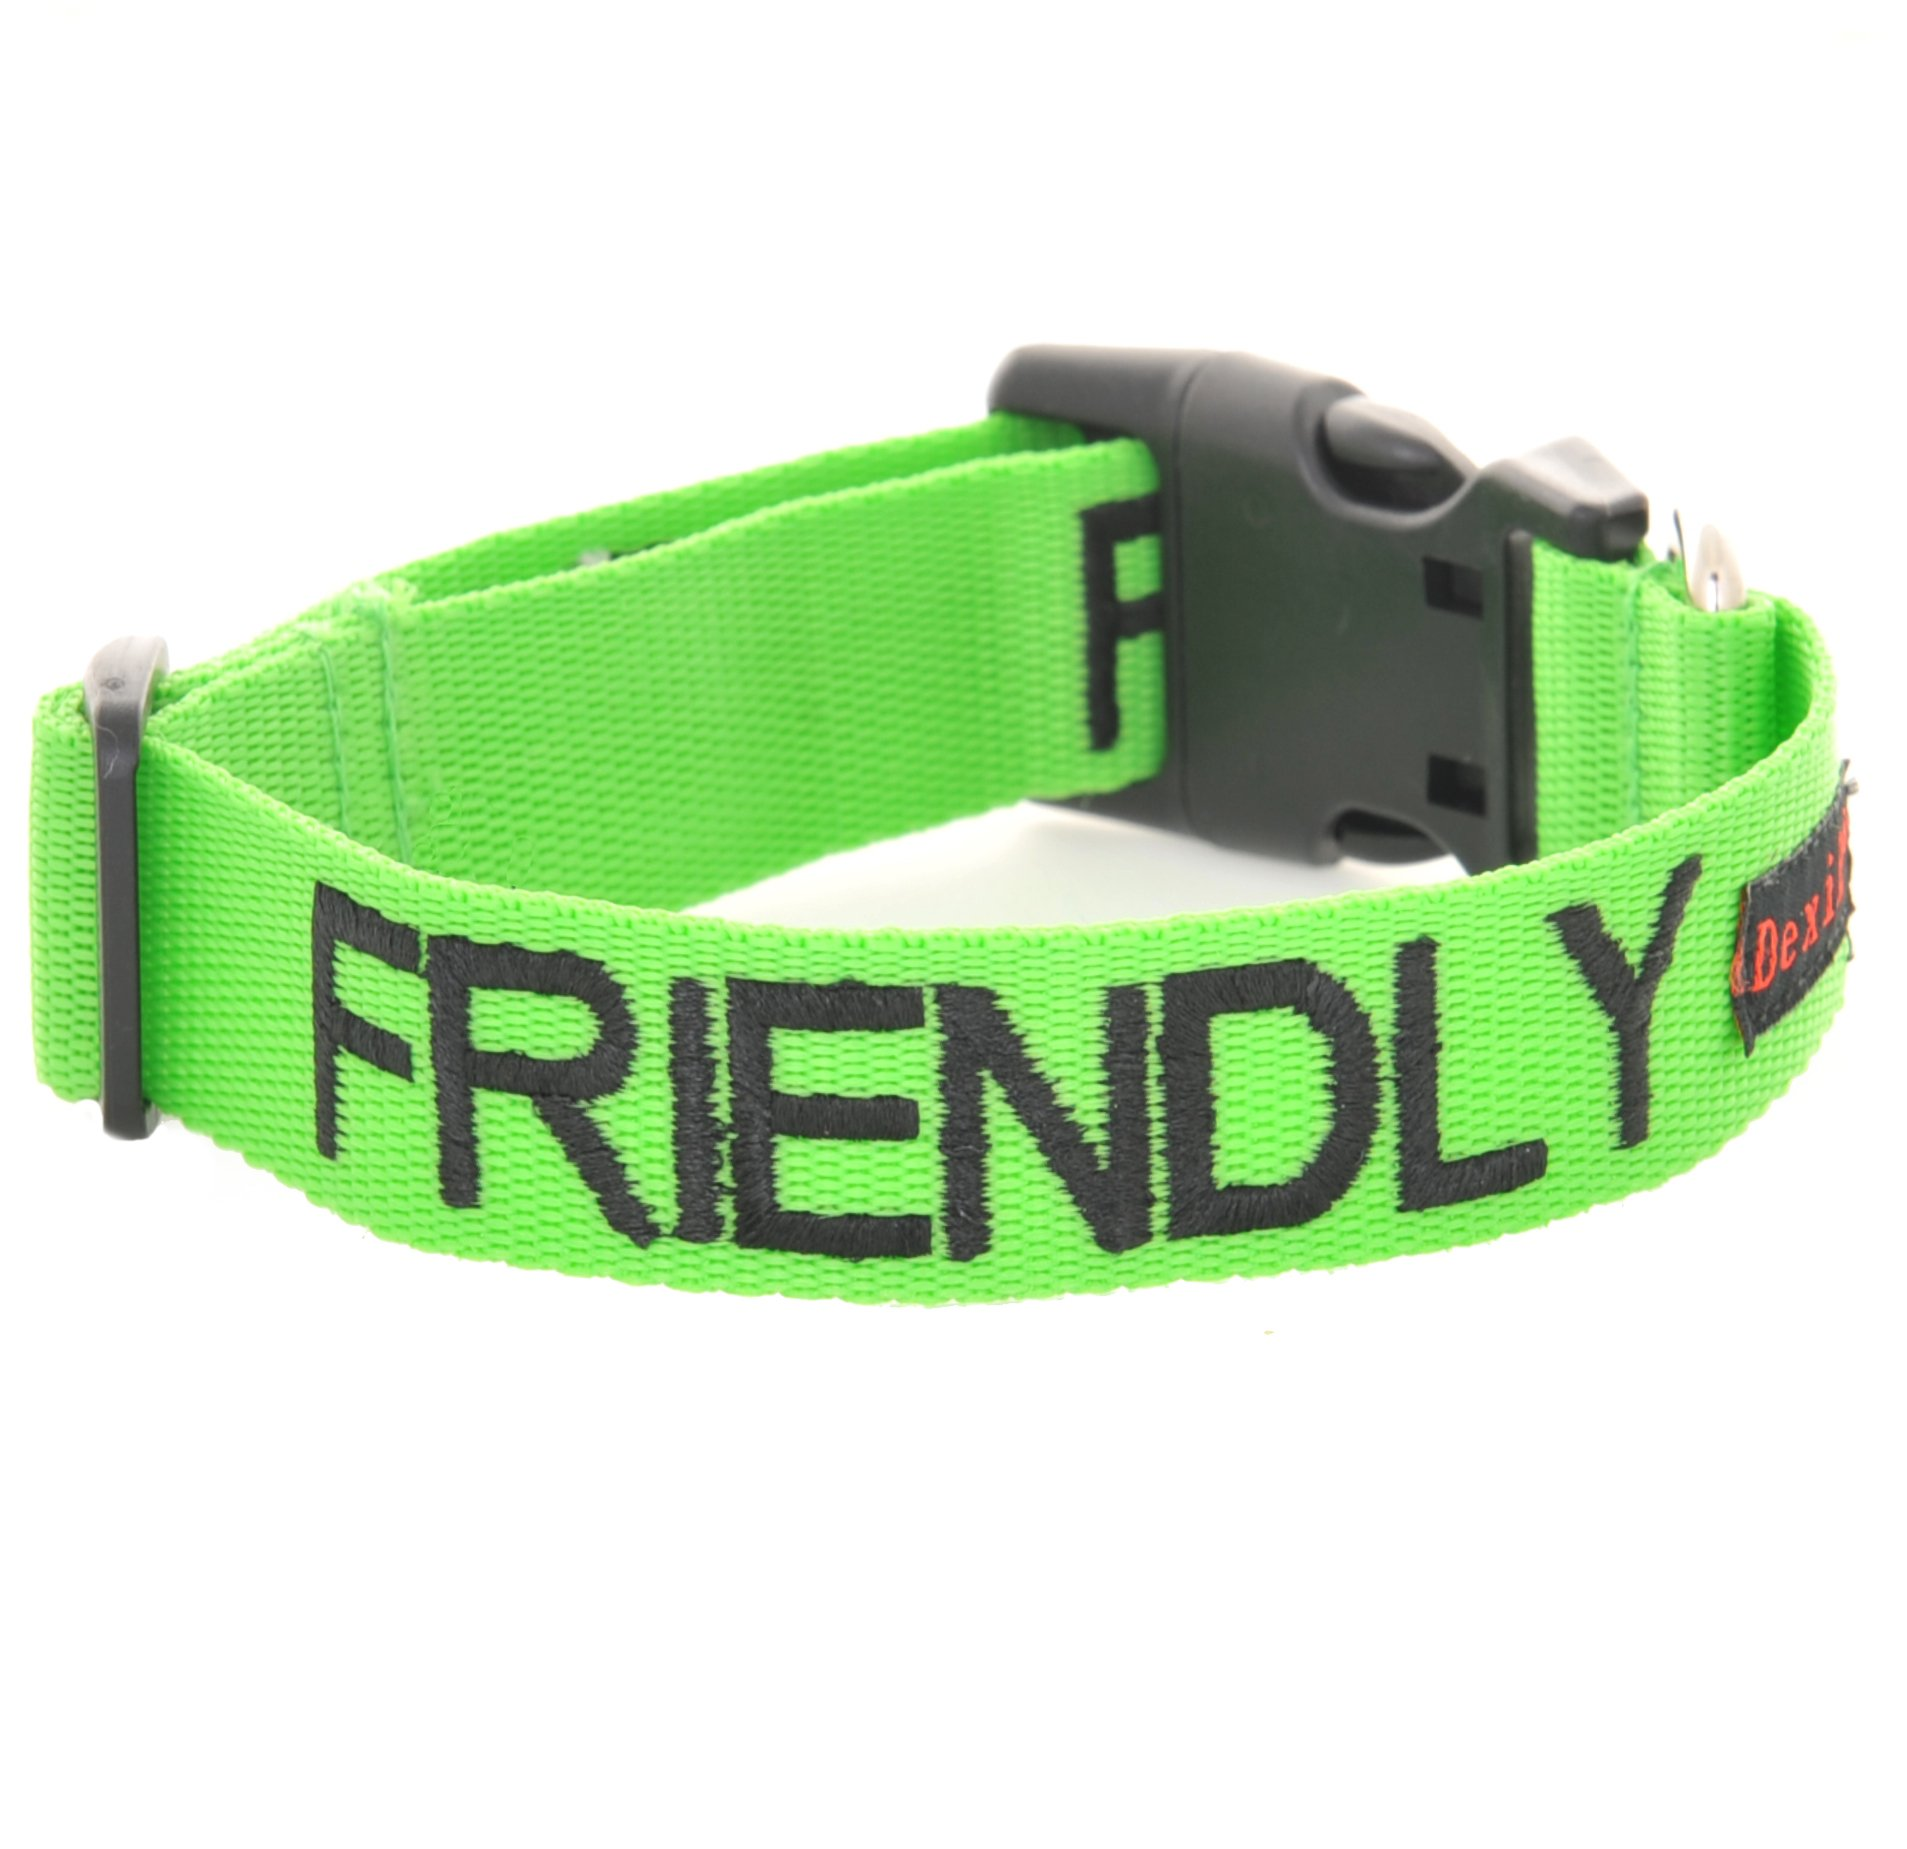 ''FRIENDLY'' Green Color Coded S-M L-XL Buckle Dog Collar (Known As Friendly) PREVENTS Accidents By Warning Others of Your Dog in Advance! (S-M Collar 10-17''Lx1''W)